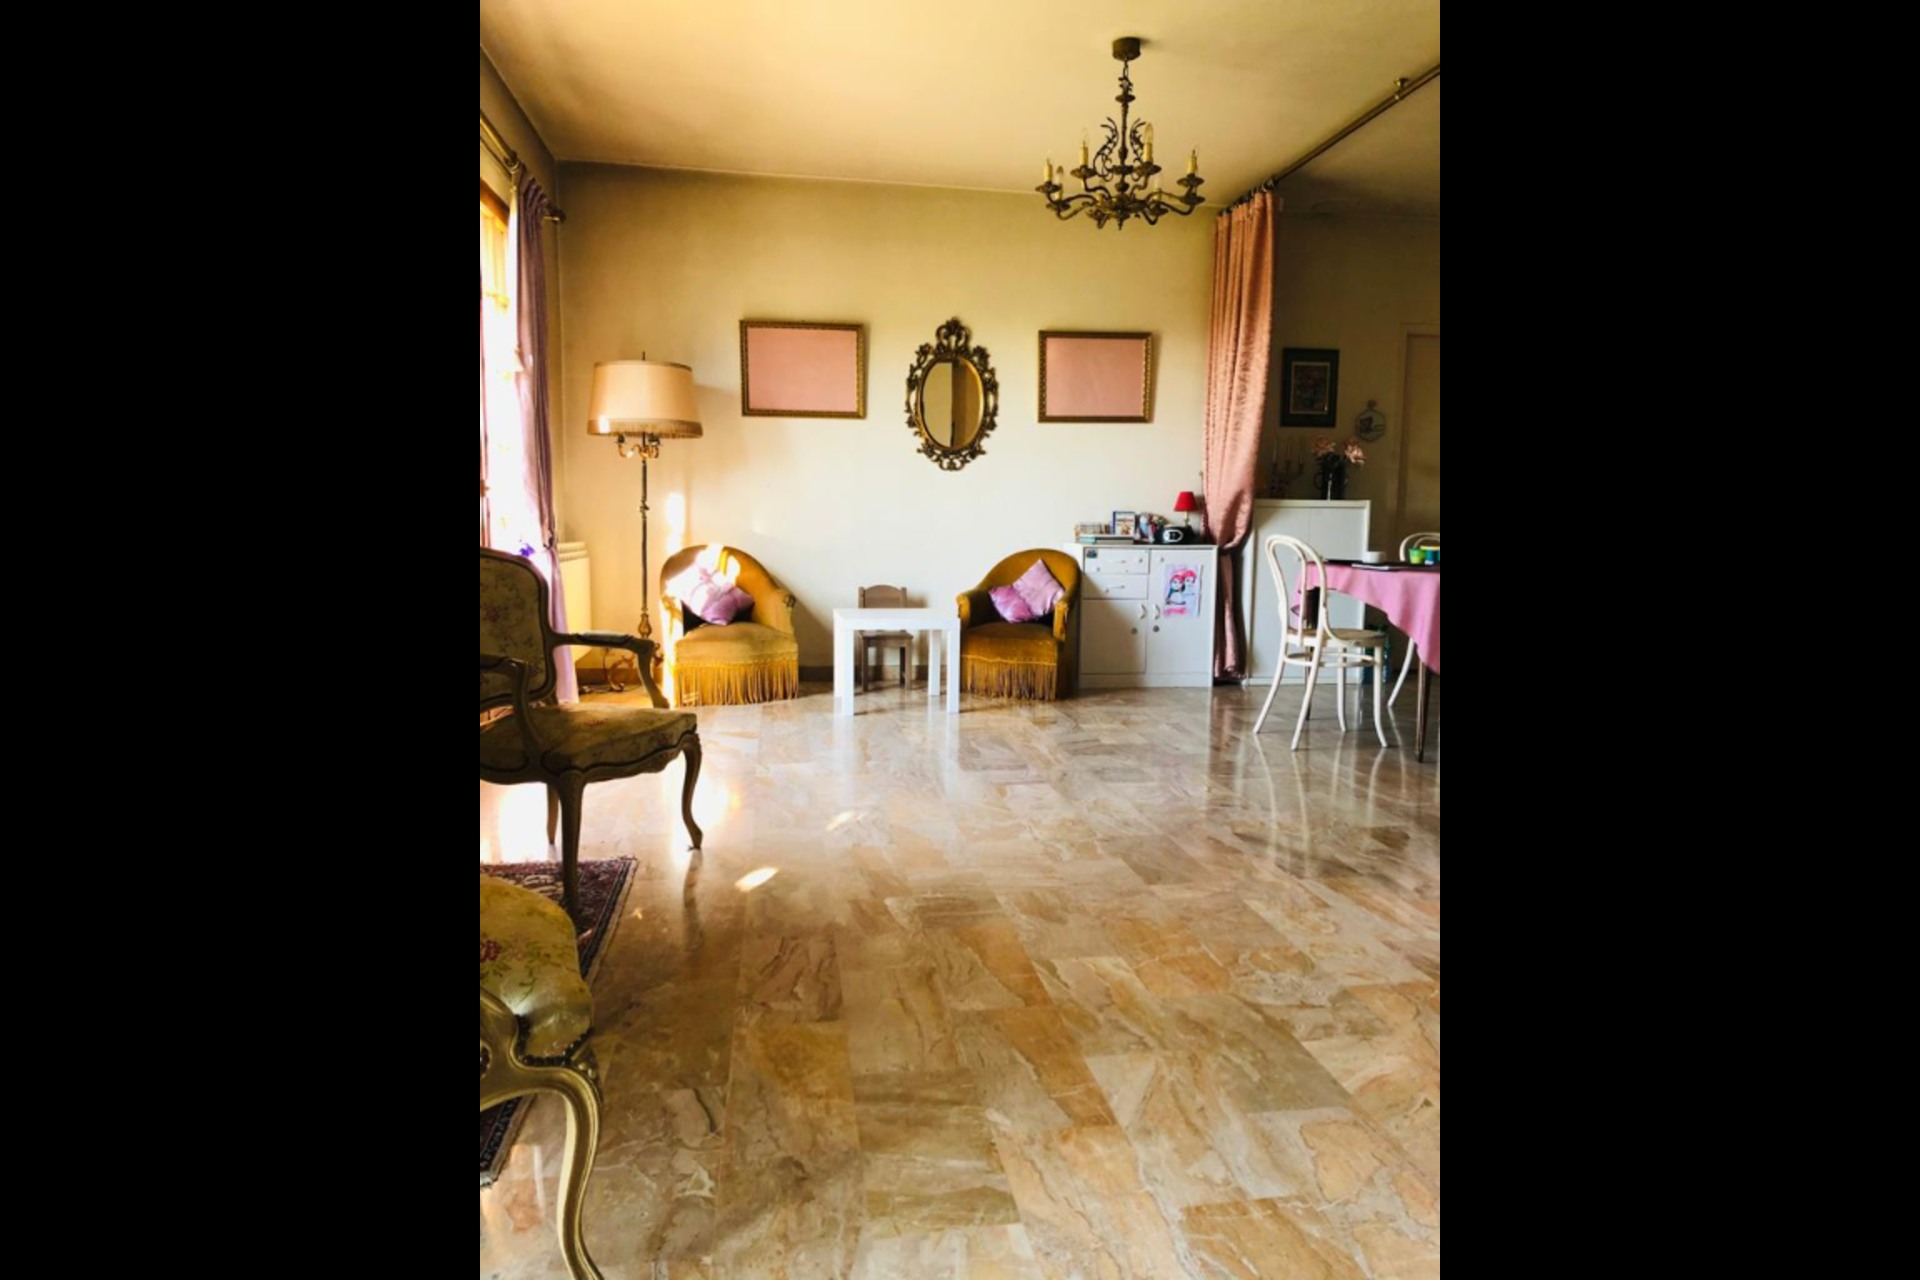 image 4 - House For sale feucherolles - 8 rooms